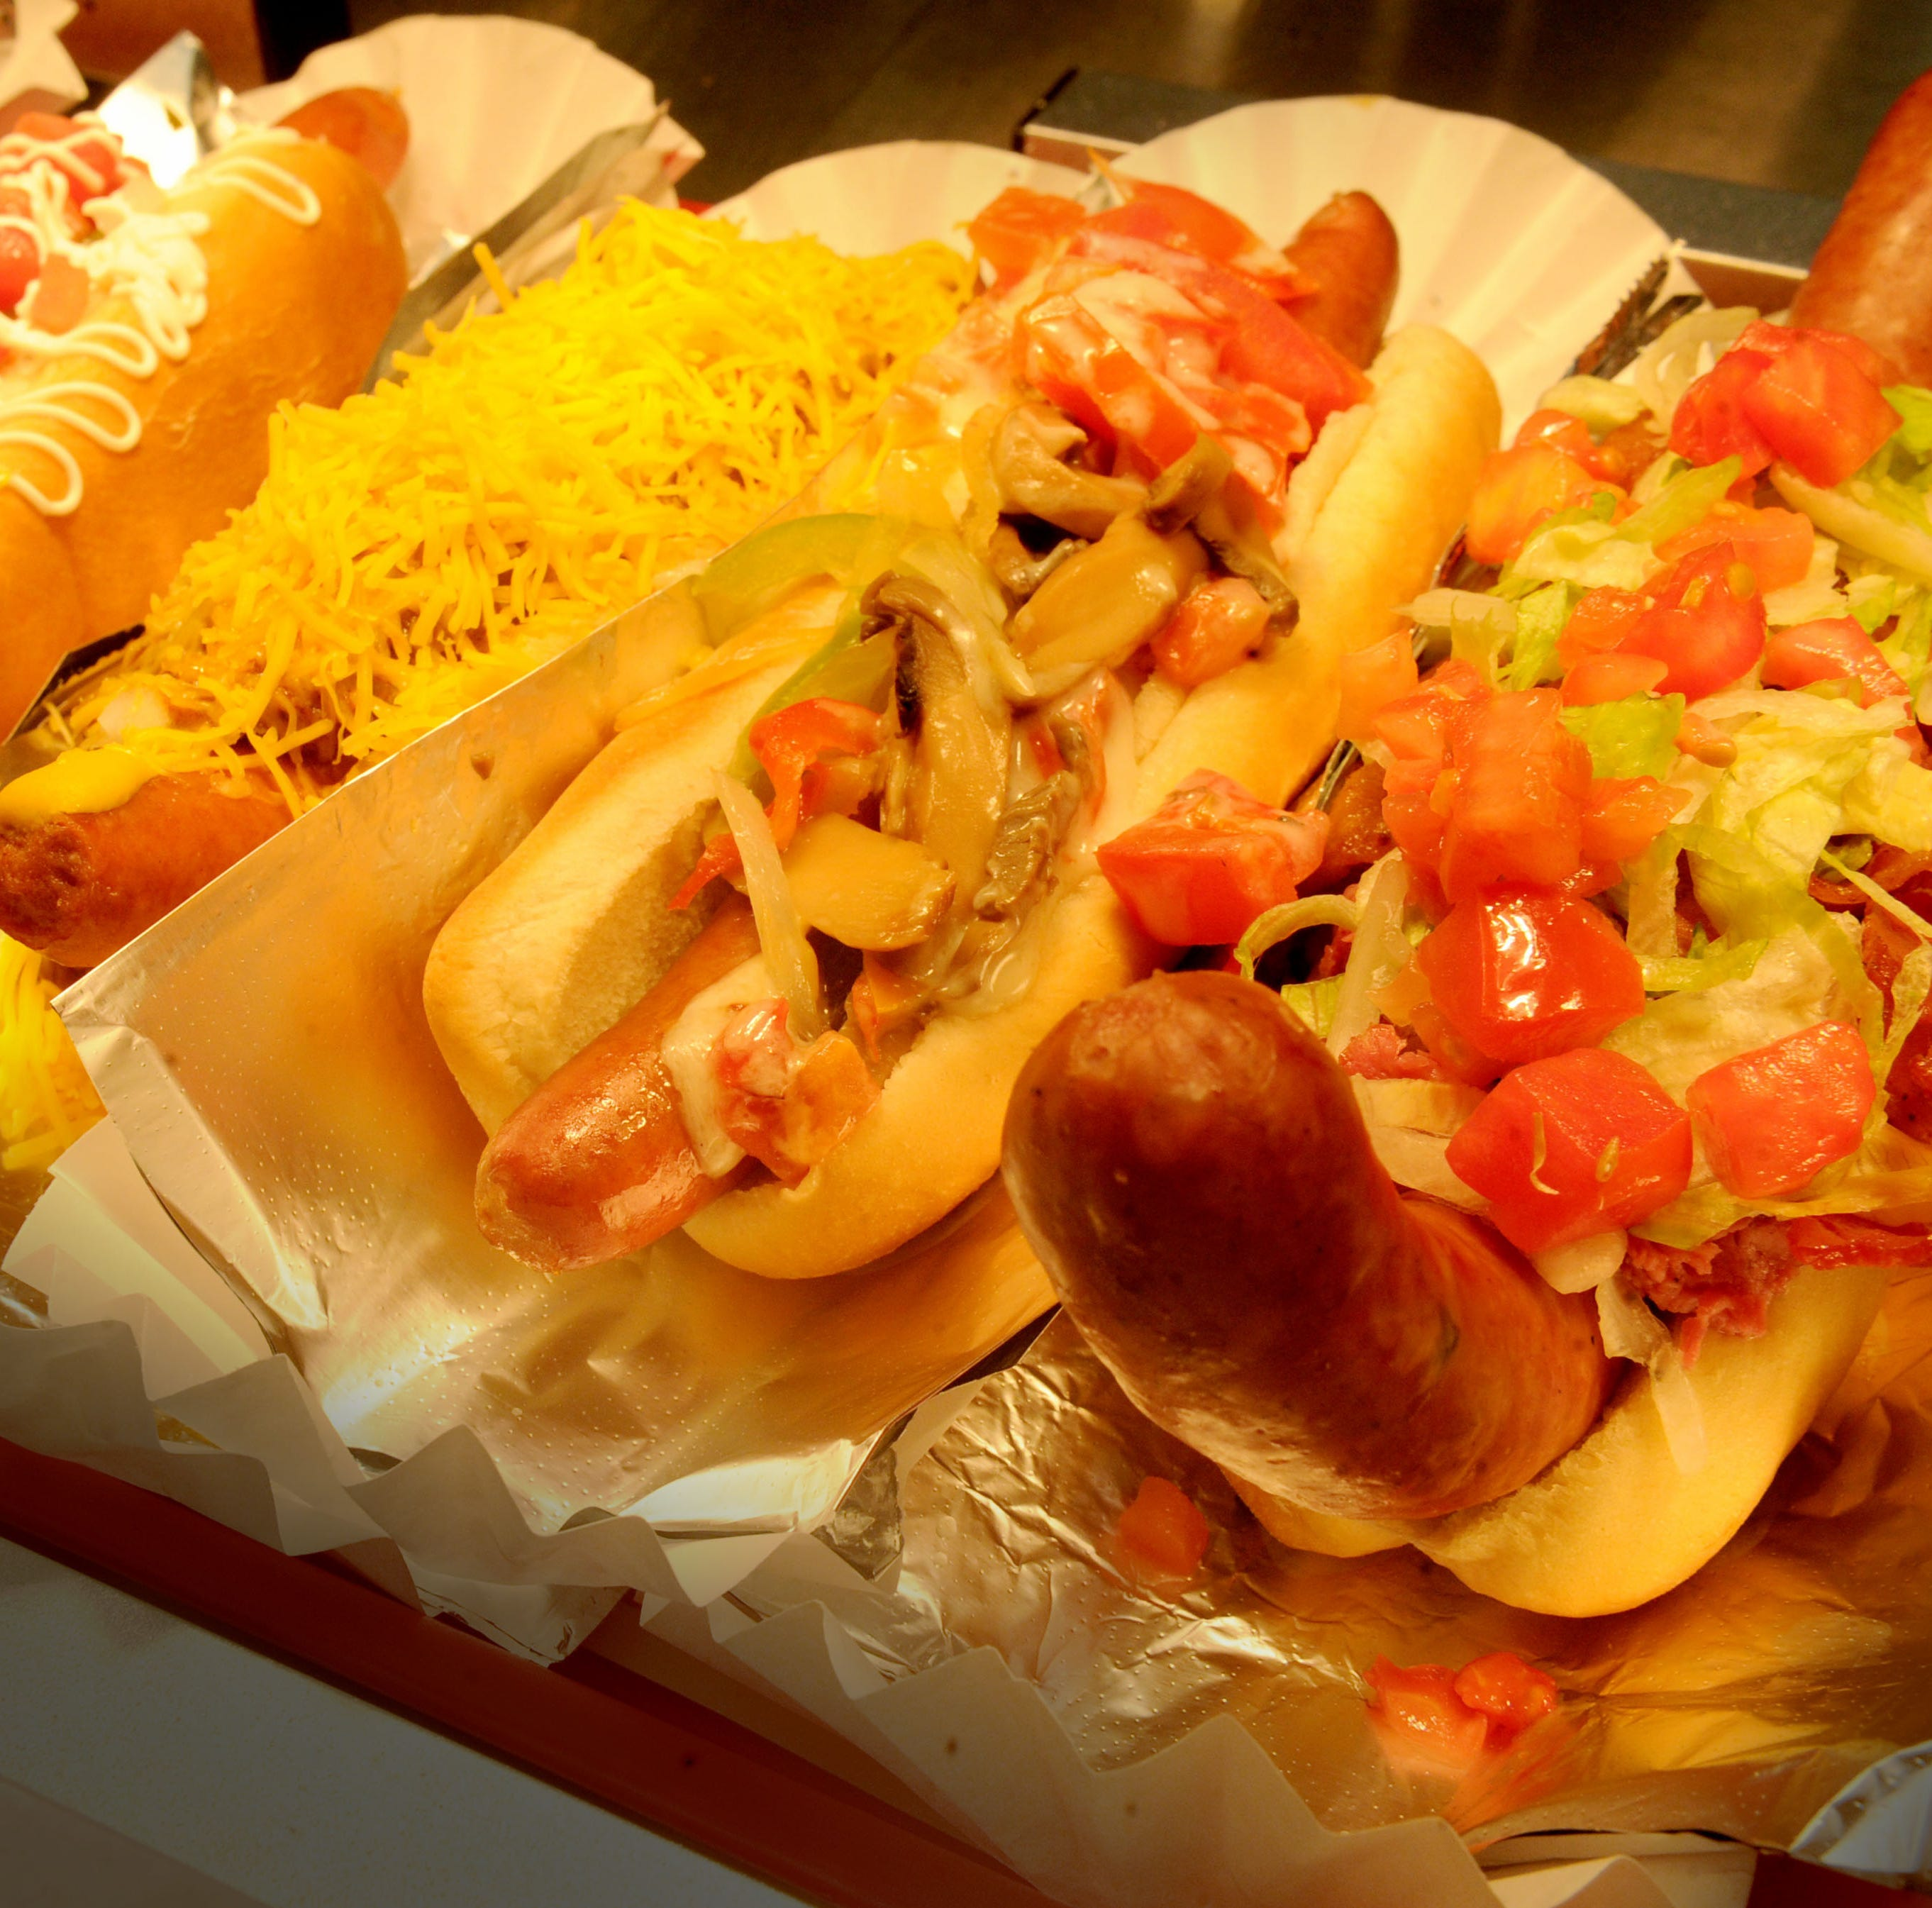 Restaurant review: Pink's celebrates all that is hot dogs and more at new Camarillo site